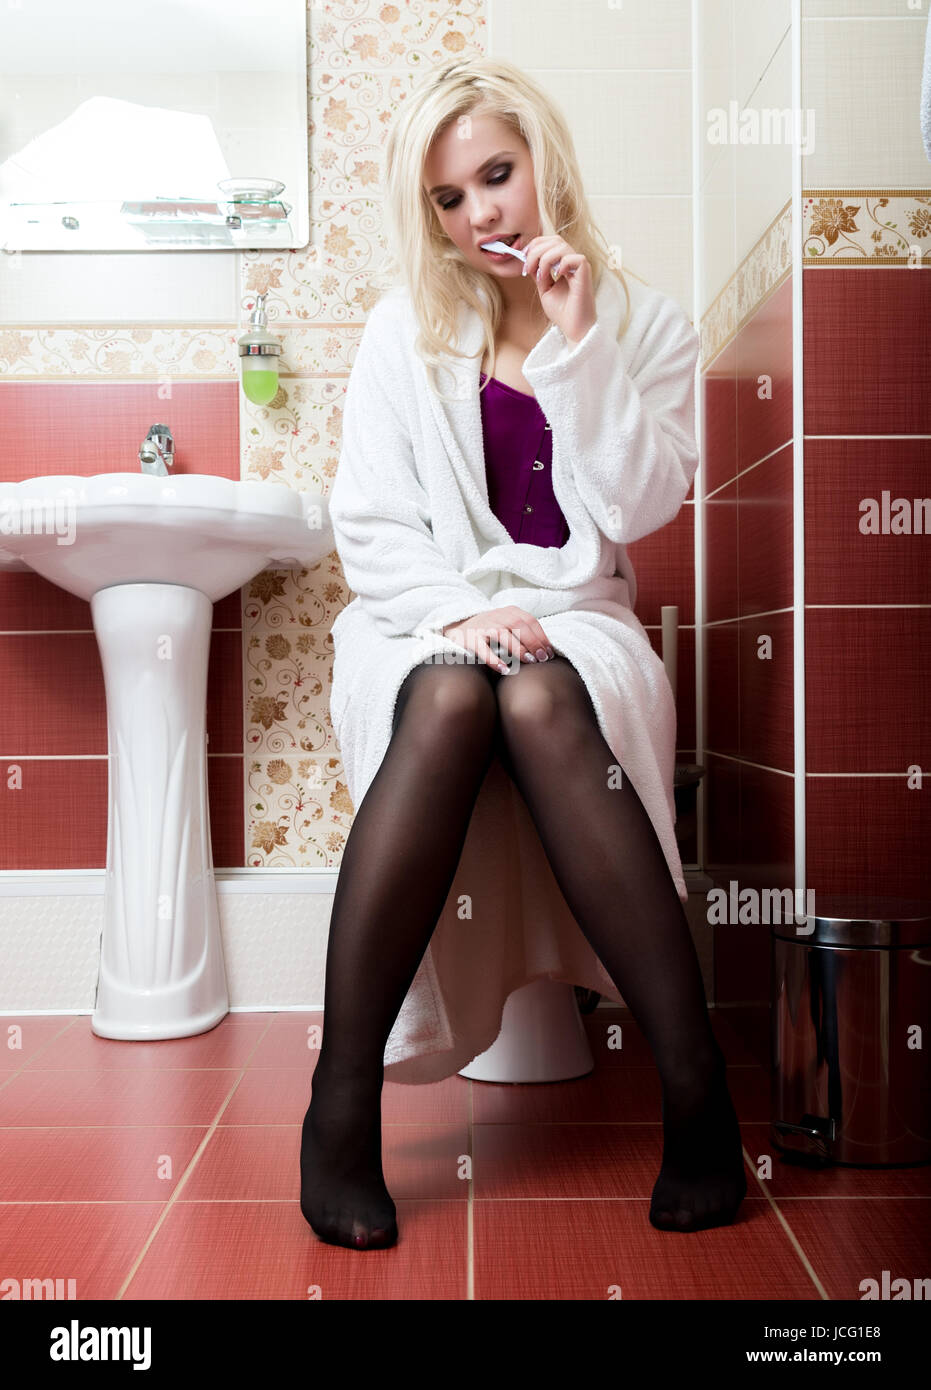 Young woman cleaning her teeth sitting on the toilet in a bathroom Stock Photo